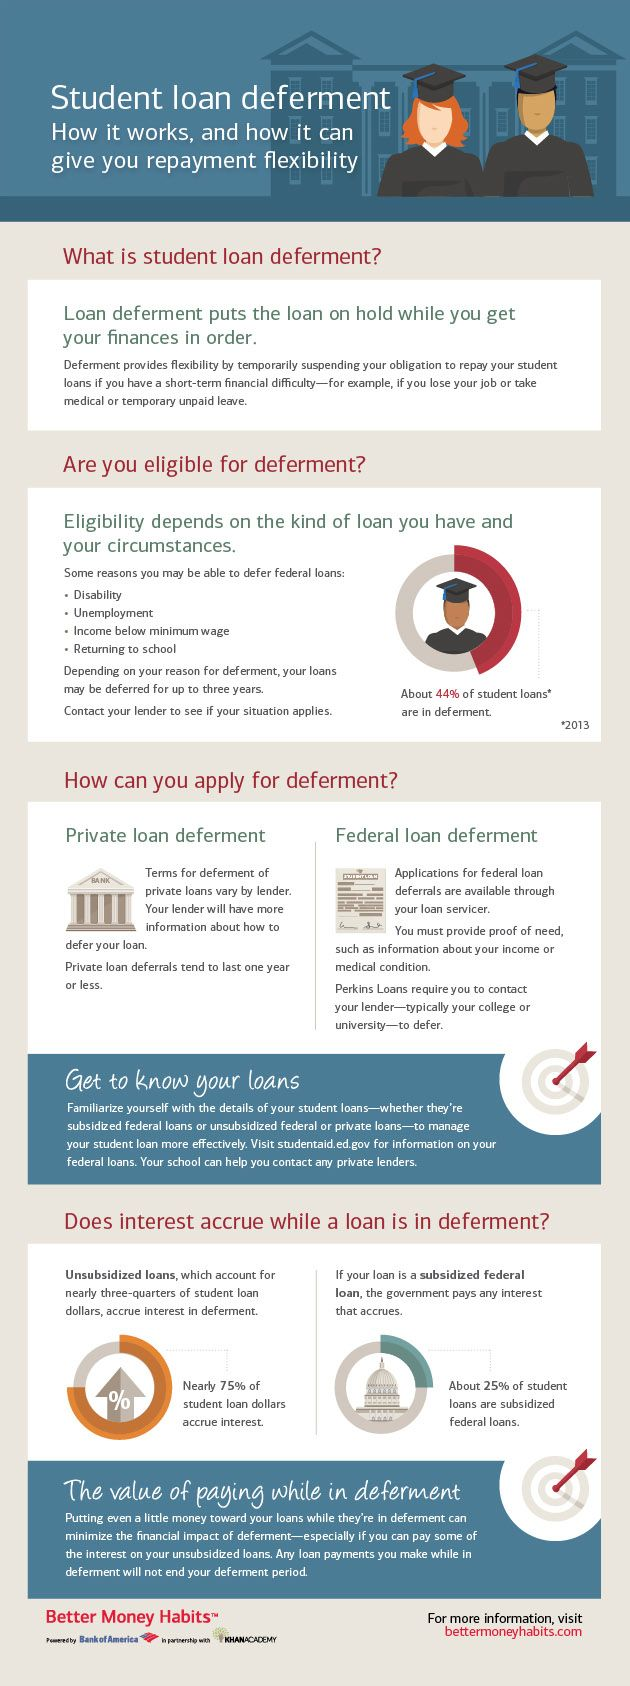 Learn what student loan deferment is and how to do it with the tips and insights offered in this infographic from Better Money Habits.